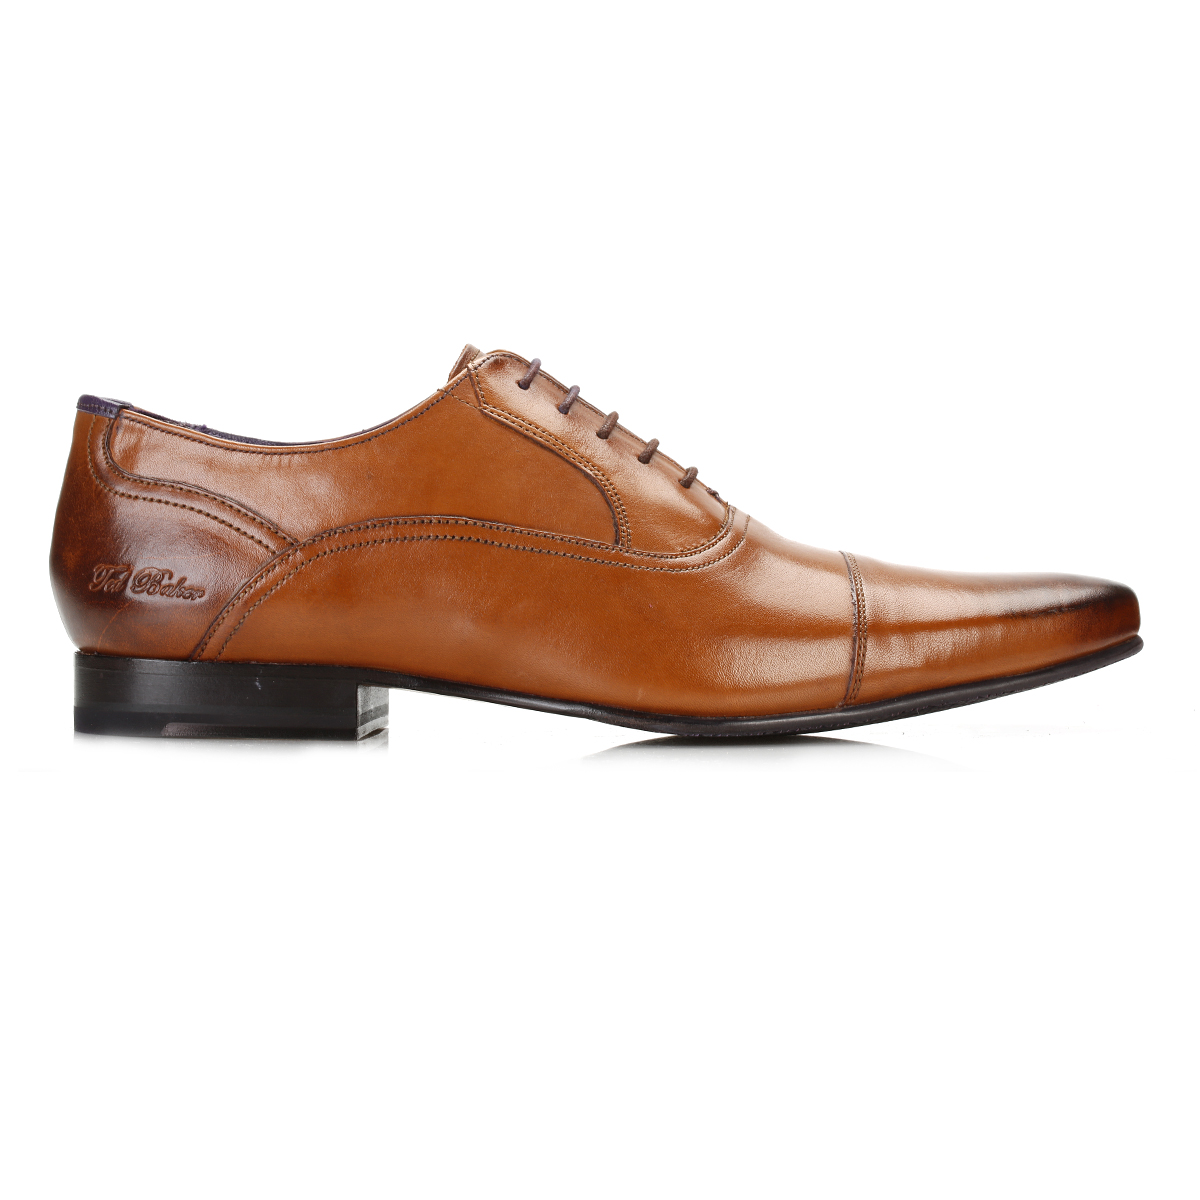 Tan Ted Baker Dress Shoes For Sale